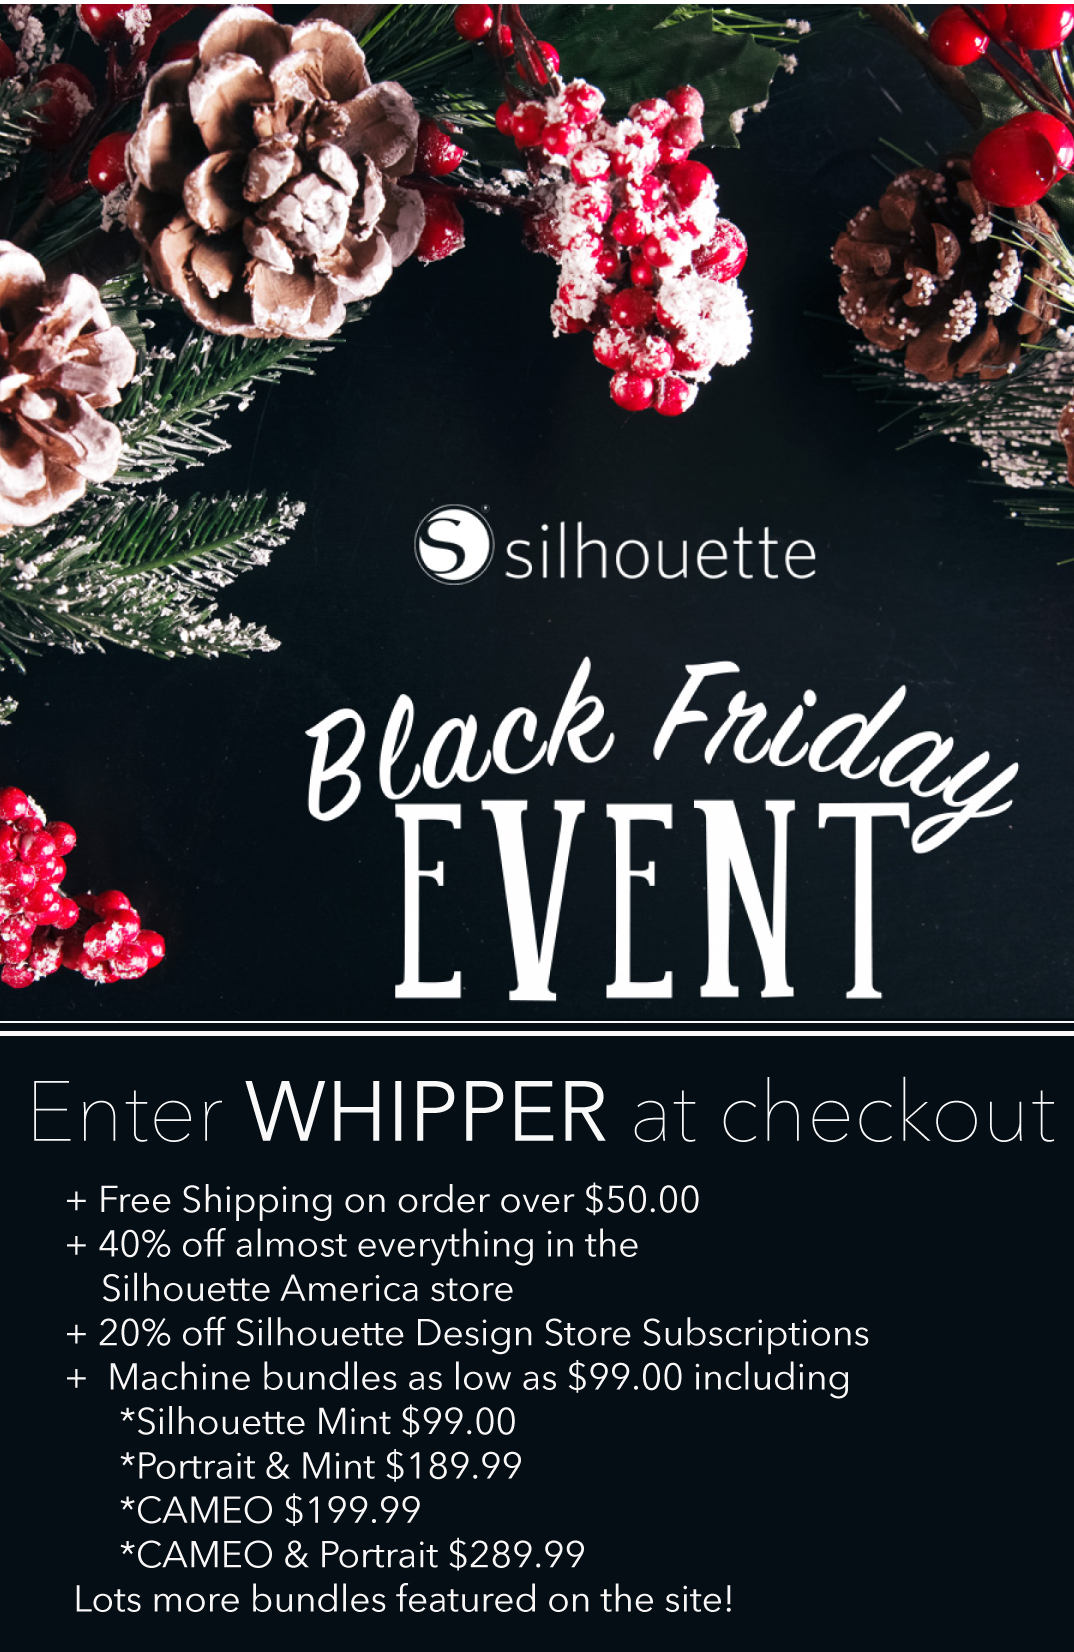 black-friday-event-WhipperBerry